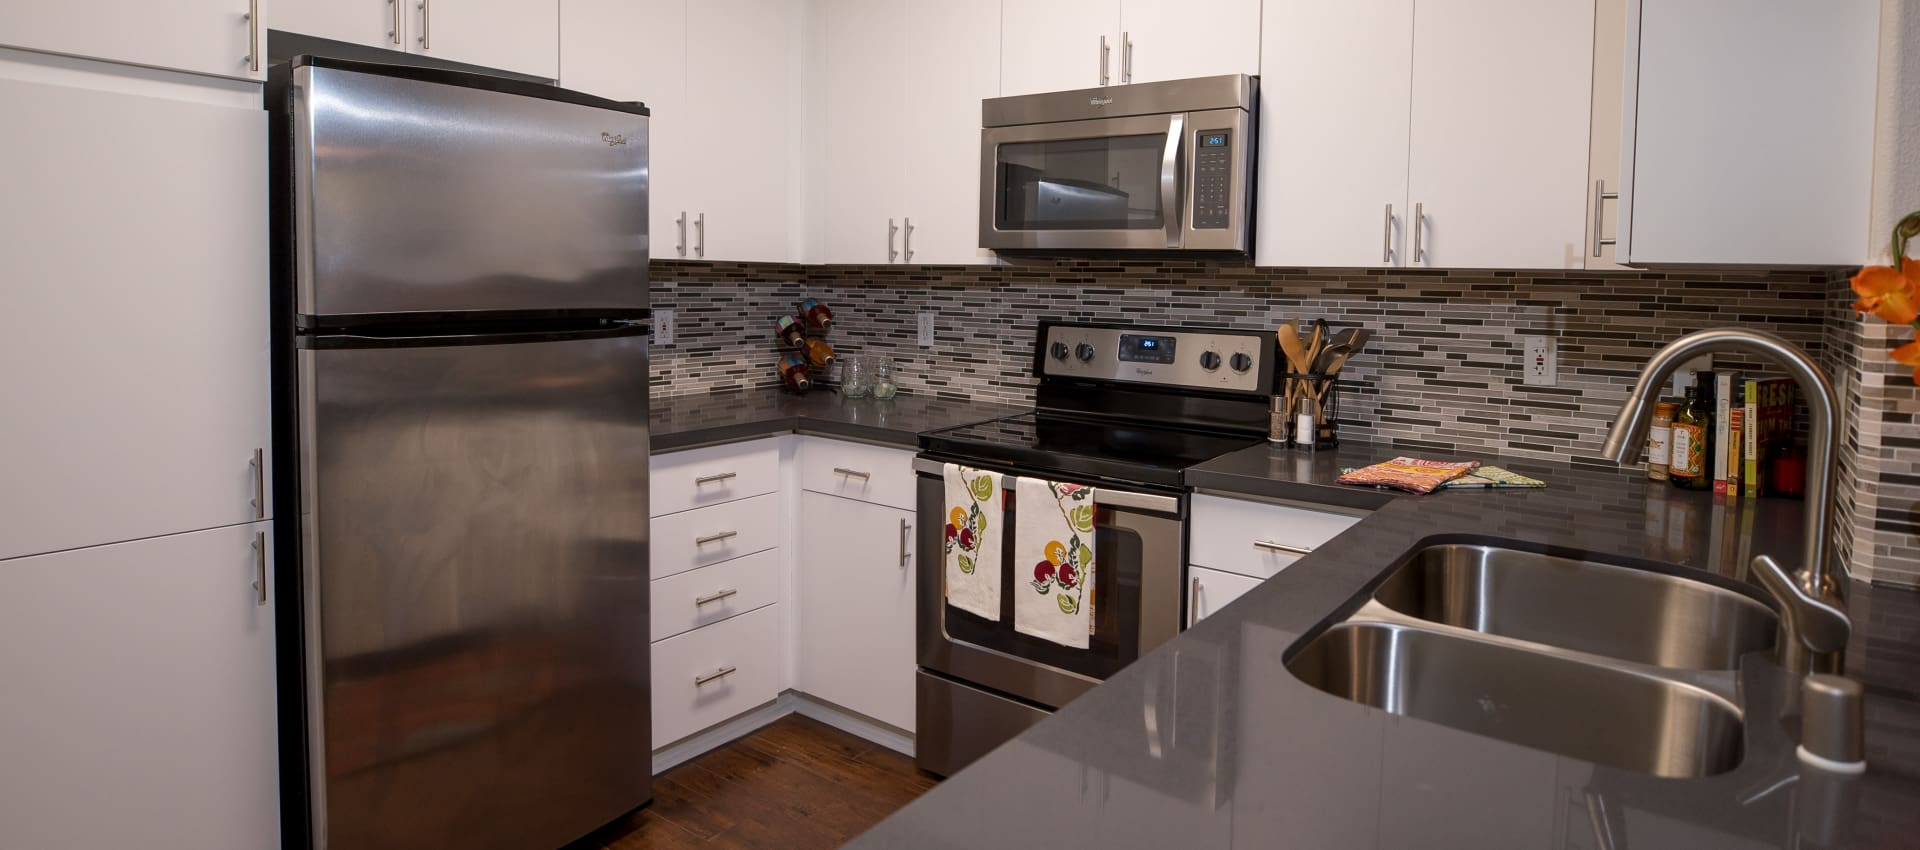 Modern kitchen at Park Central in Concord, California